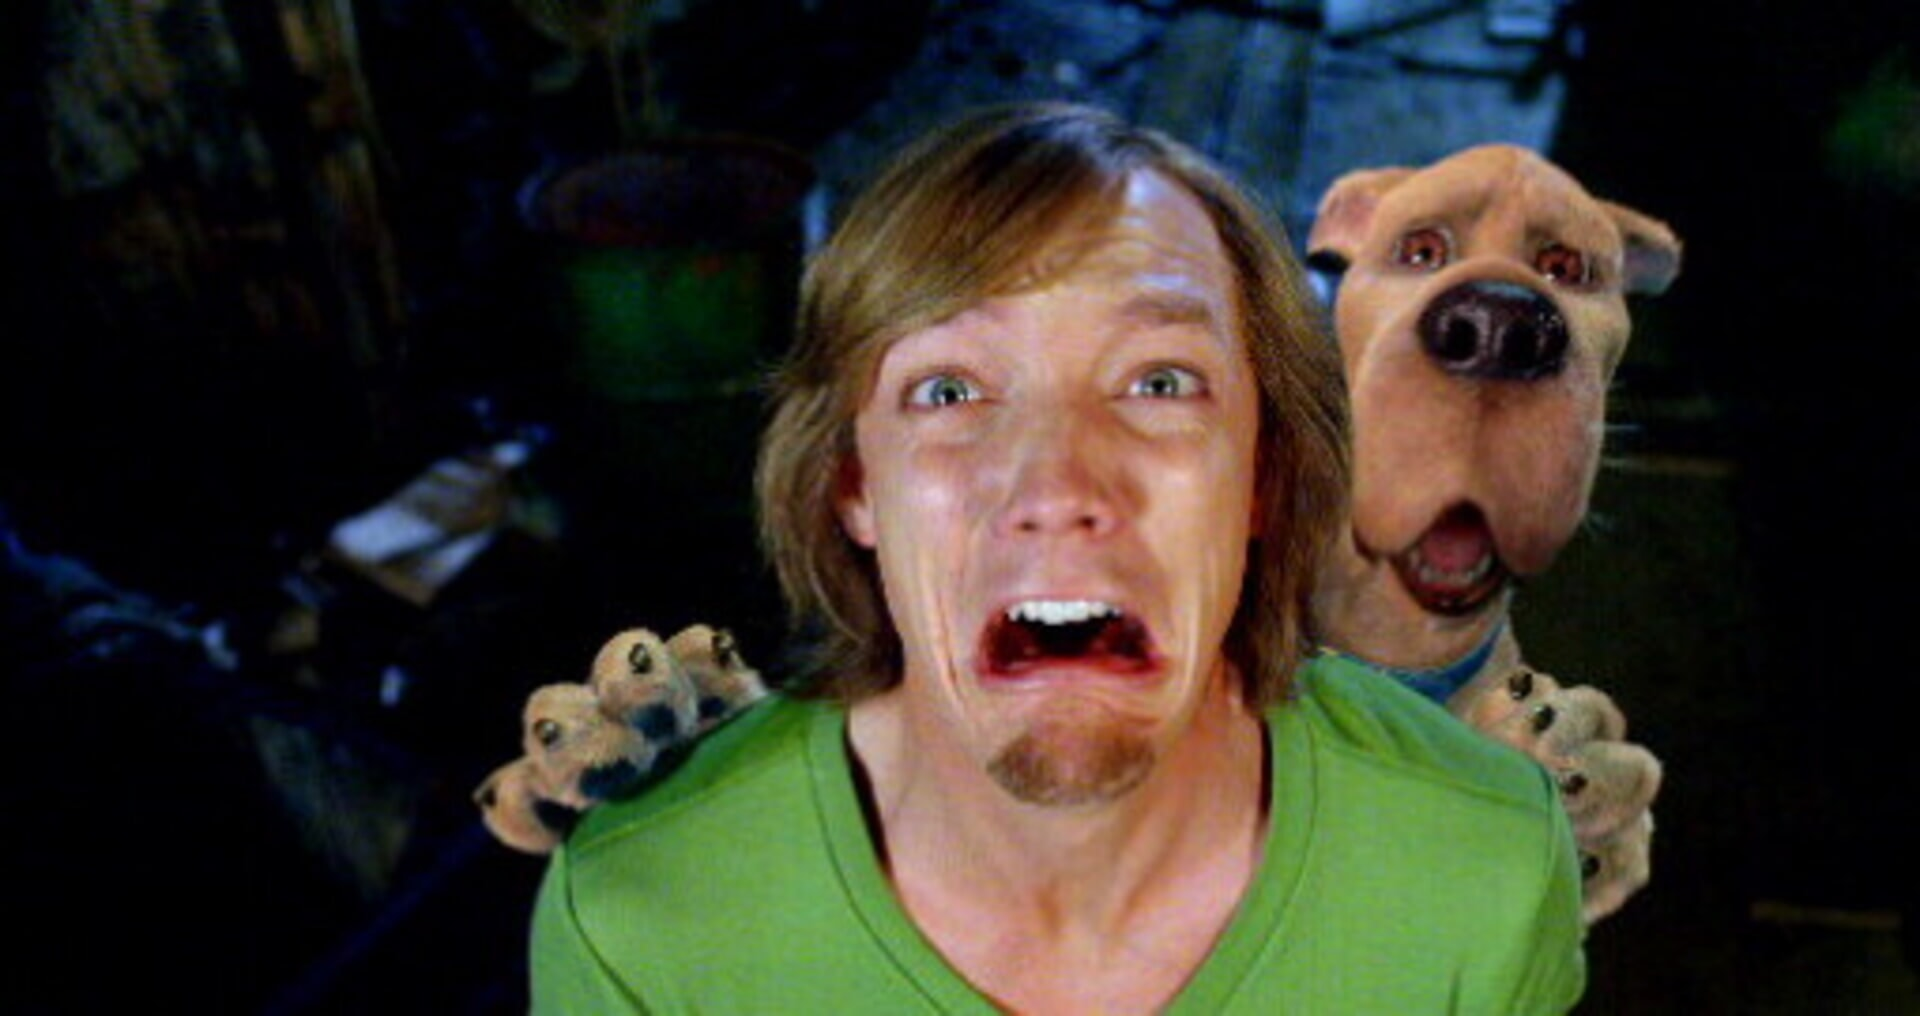 Scooby-doo 2: Monsters Unleashed - Image 3